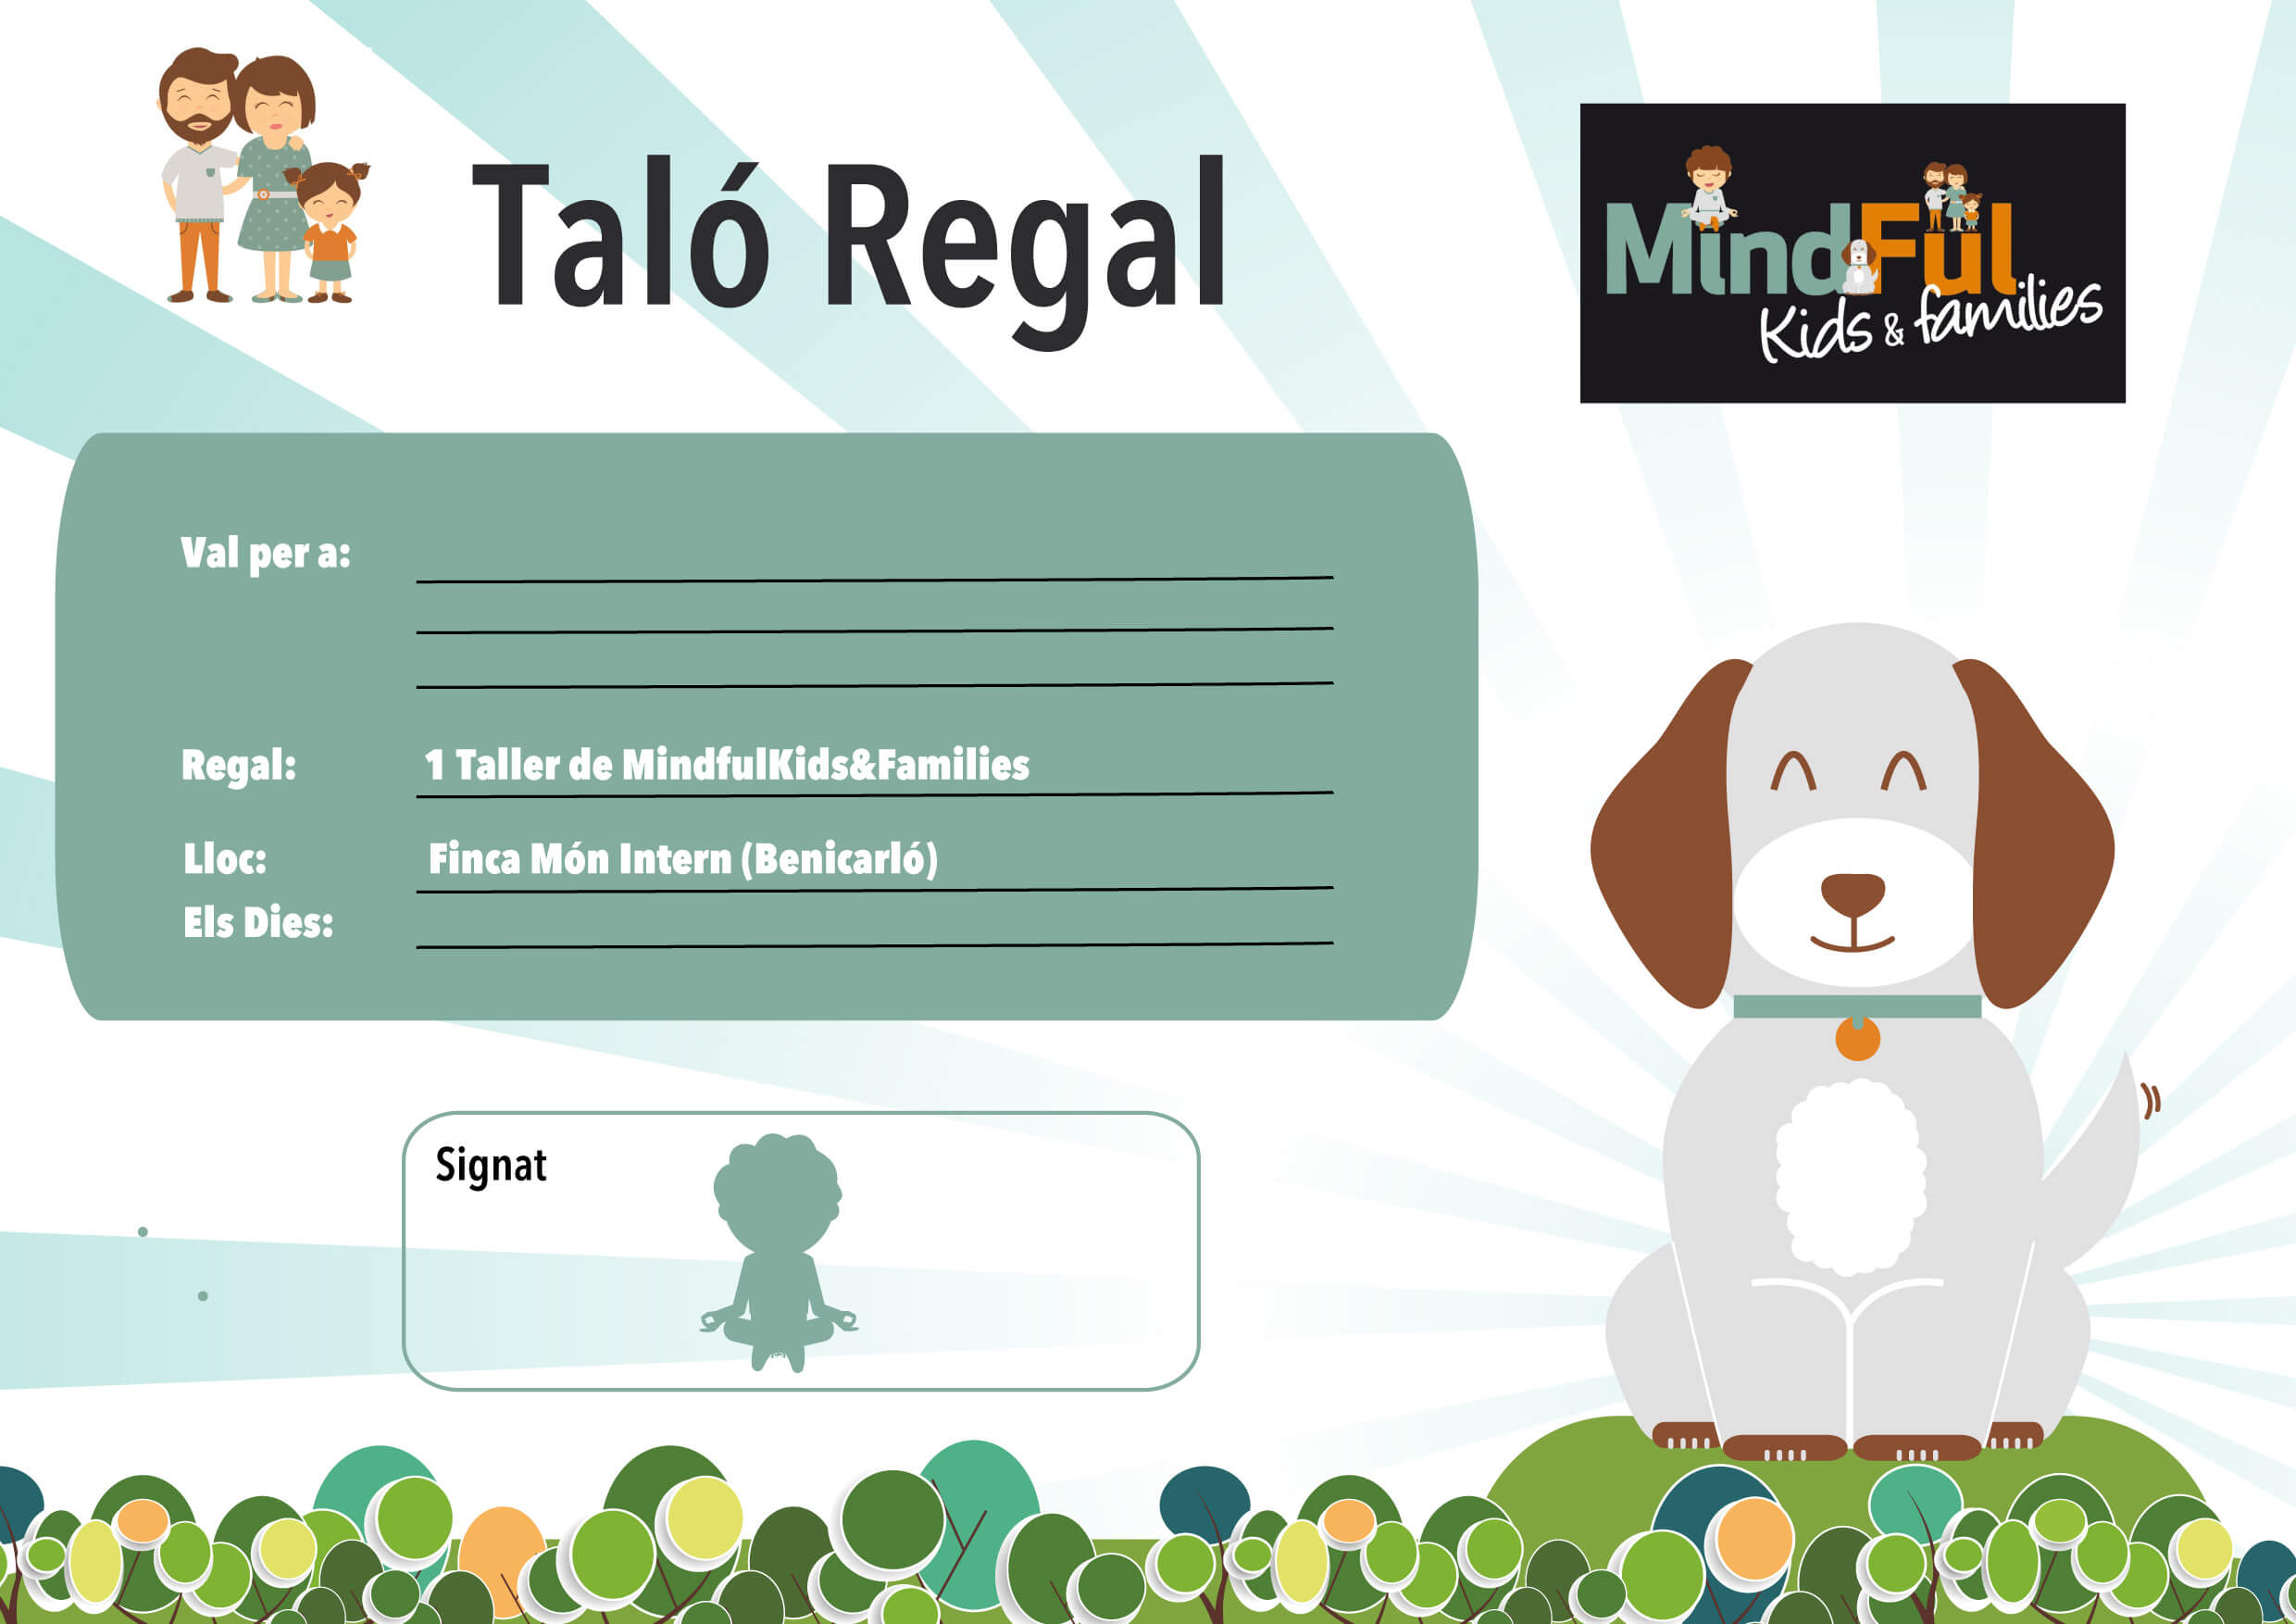 talo-regal-mindfulkids